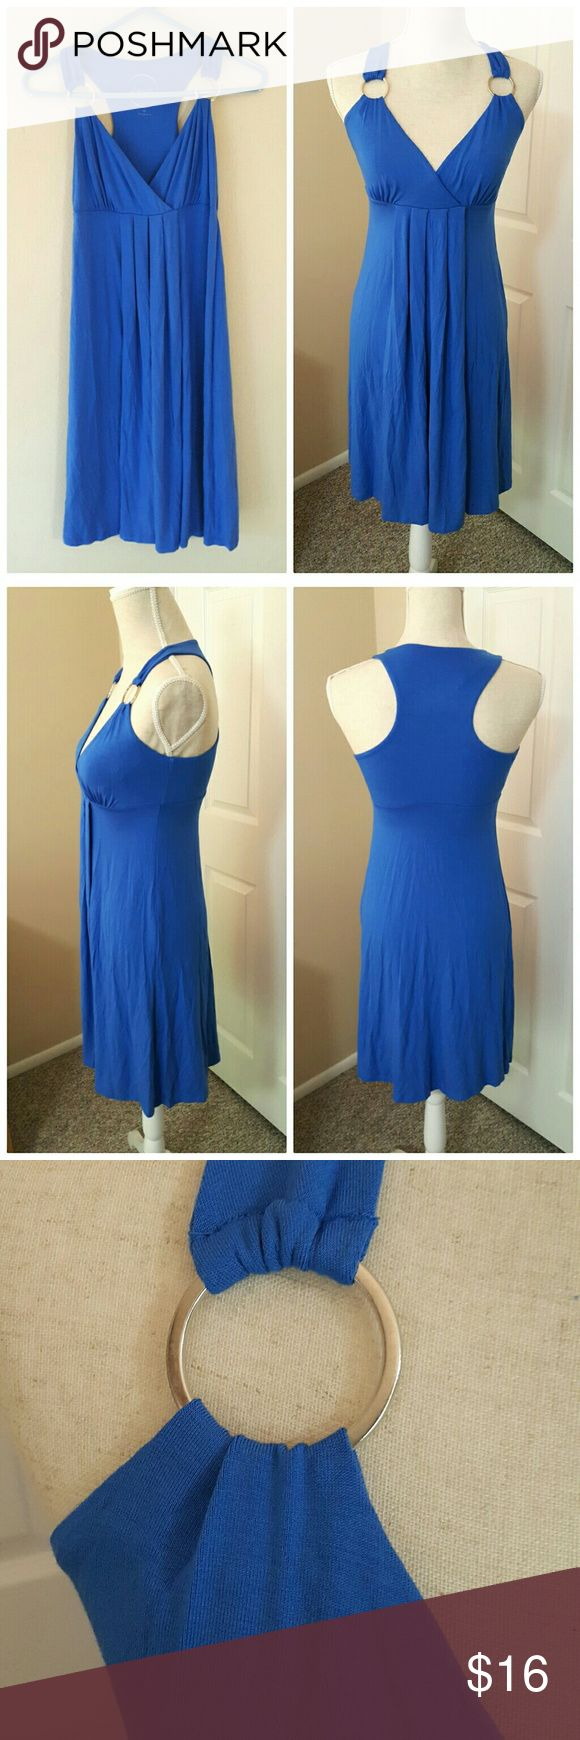 """INC Royal Blue Midi Evening Dress Size XS/S Beautiful women's dress from INC International Concepts. Nice blue color. Labeled XS. Fits Small better. Stretch type fabric - 95% rayon, 5% spandex. Perfect for casual evening events or special dates. Also great maternity dress! Hardly worn and basically new.  ℹ Bust 32""""-34"""" ℹ Length 35"""" shoulder to hem International Concepts Dresses"""